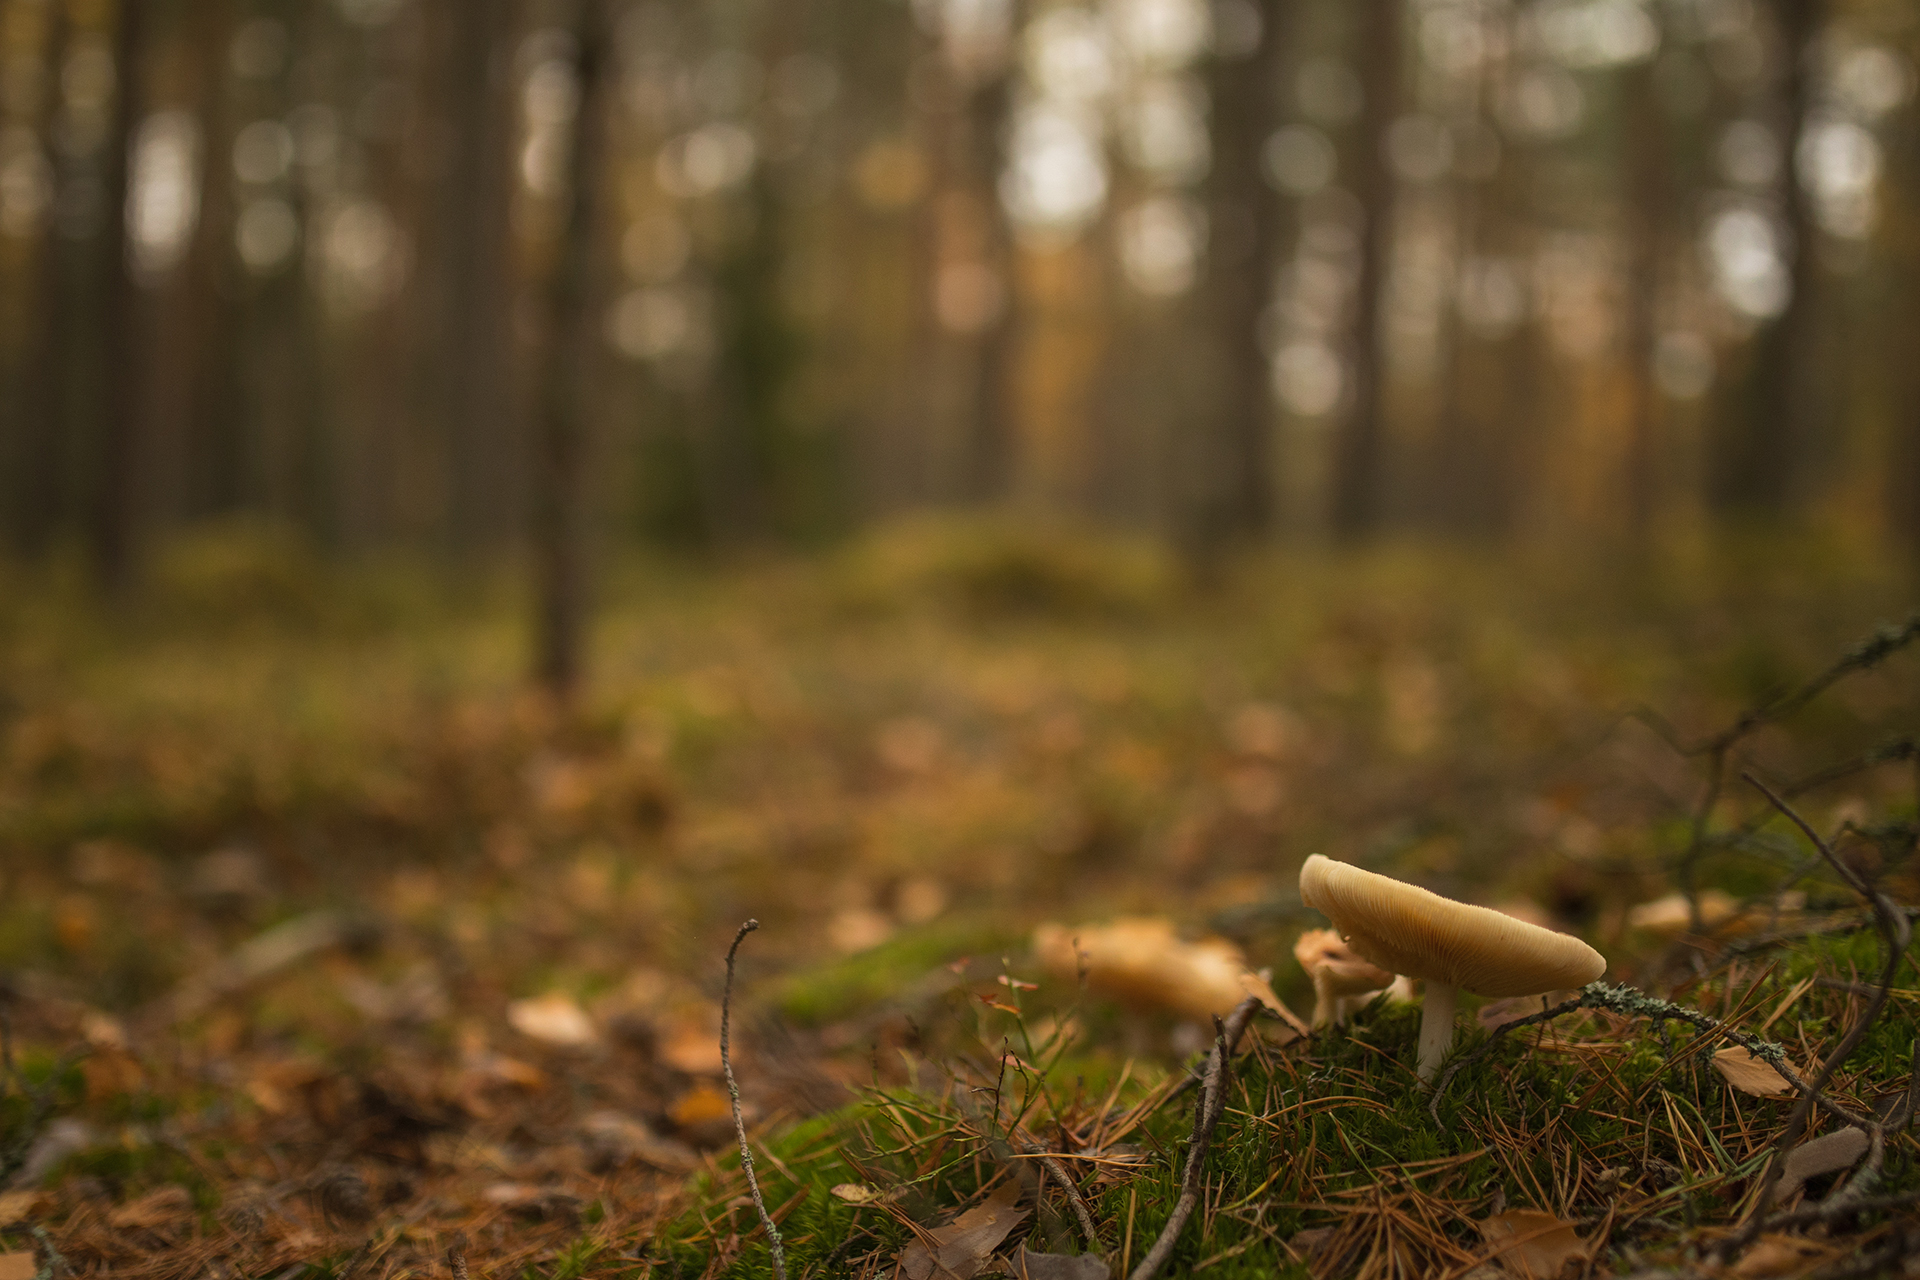 Mushrooms in the forest / Photo: A. Kuusela